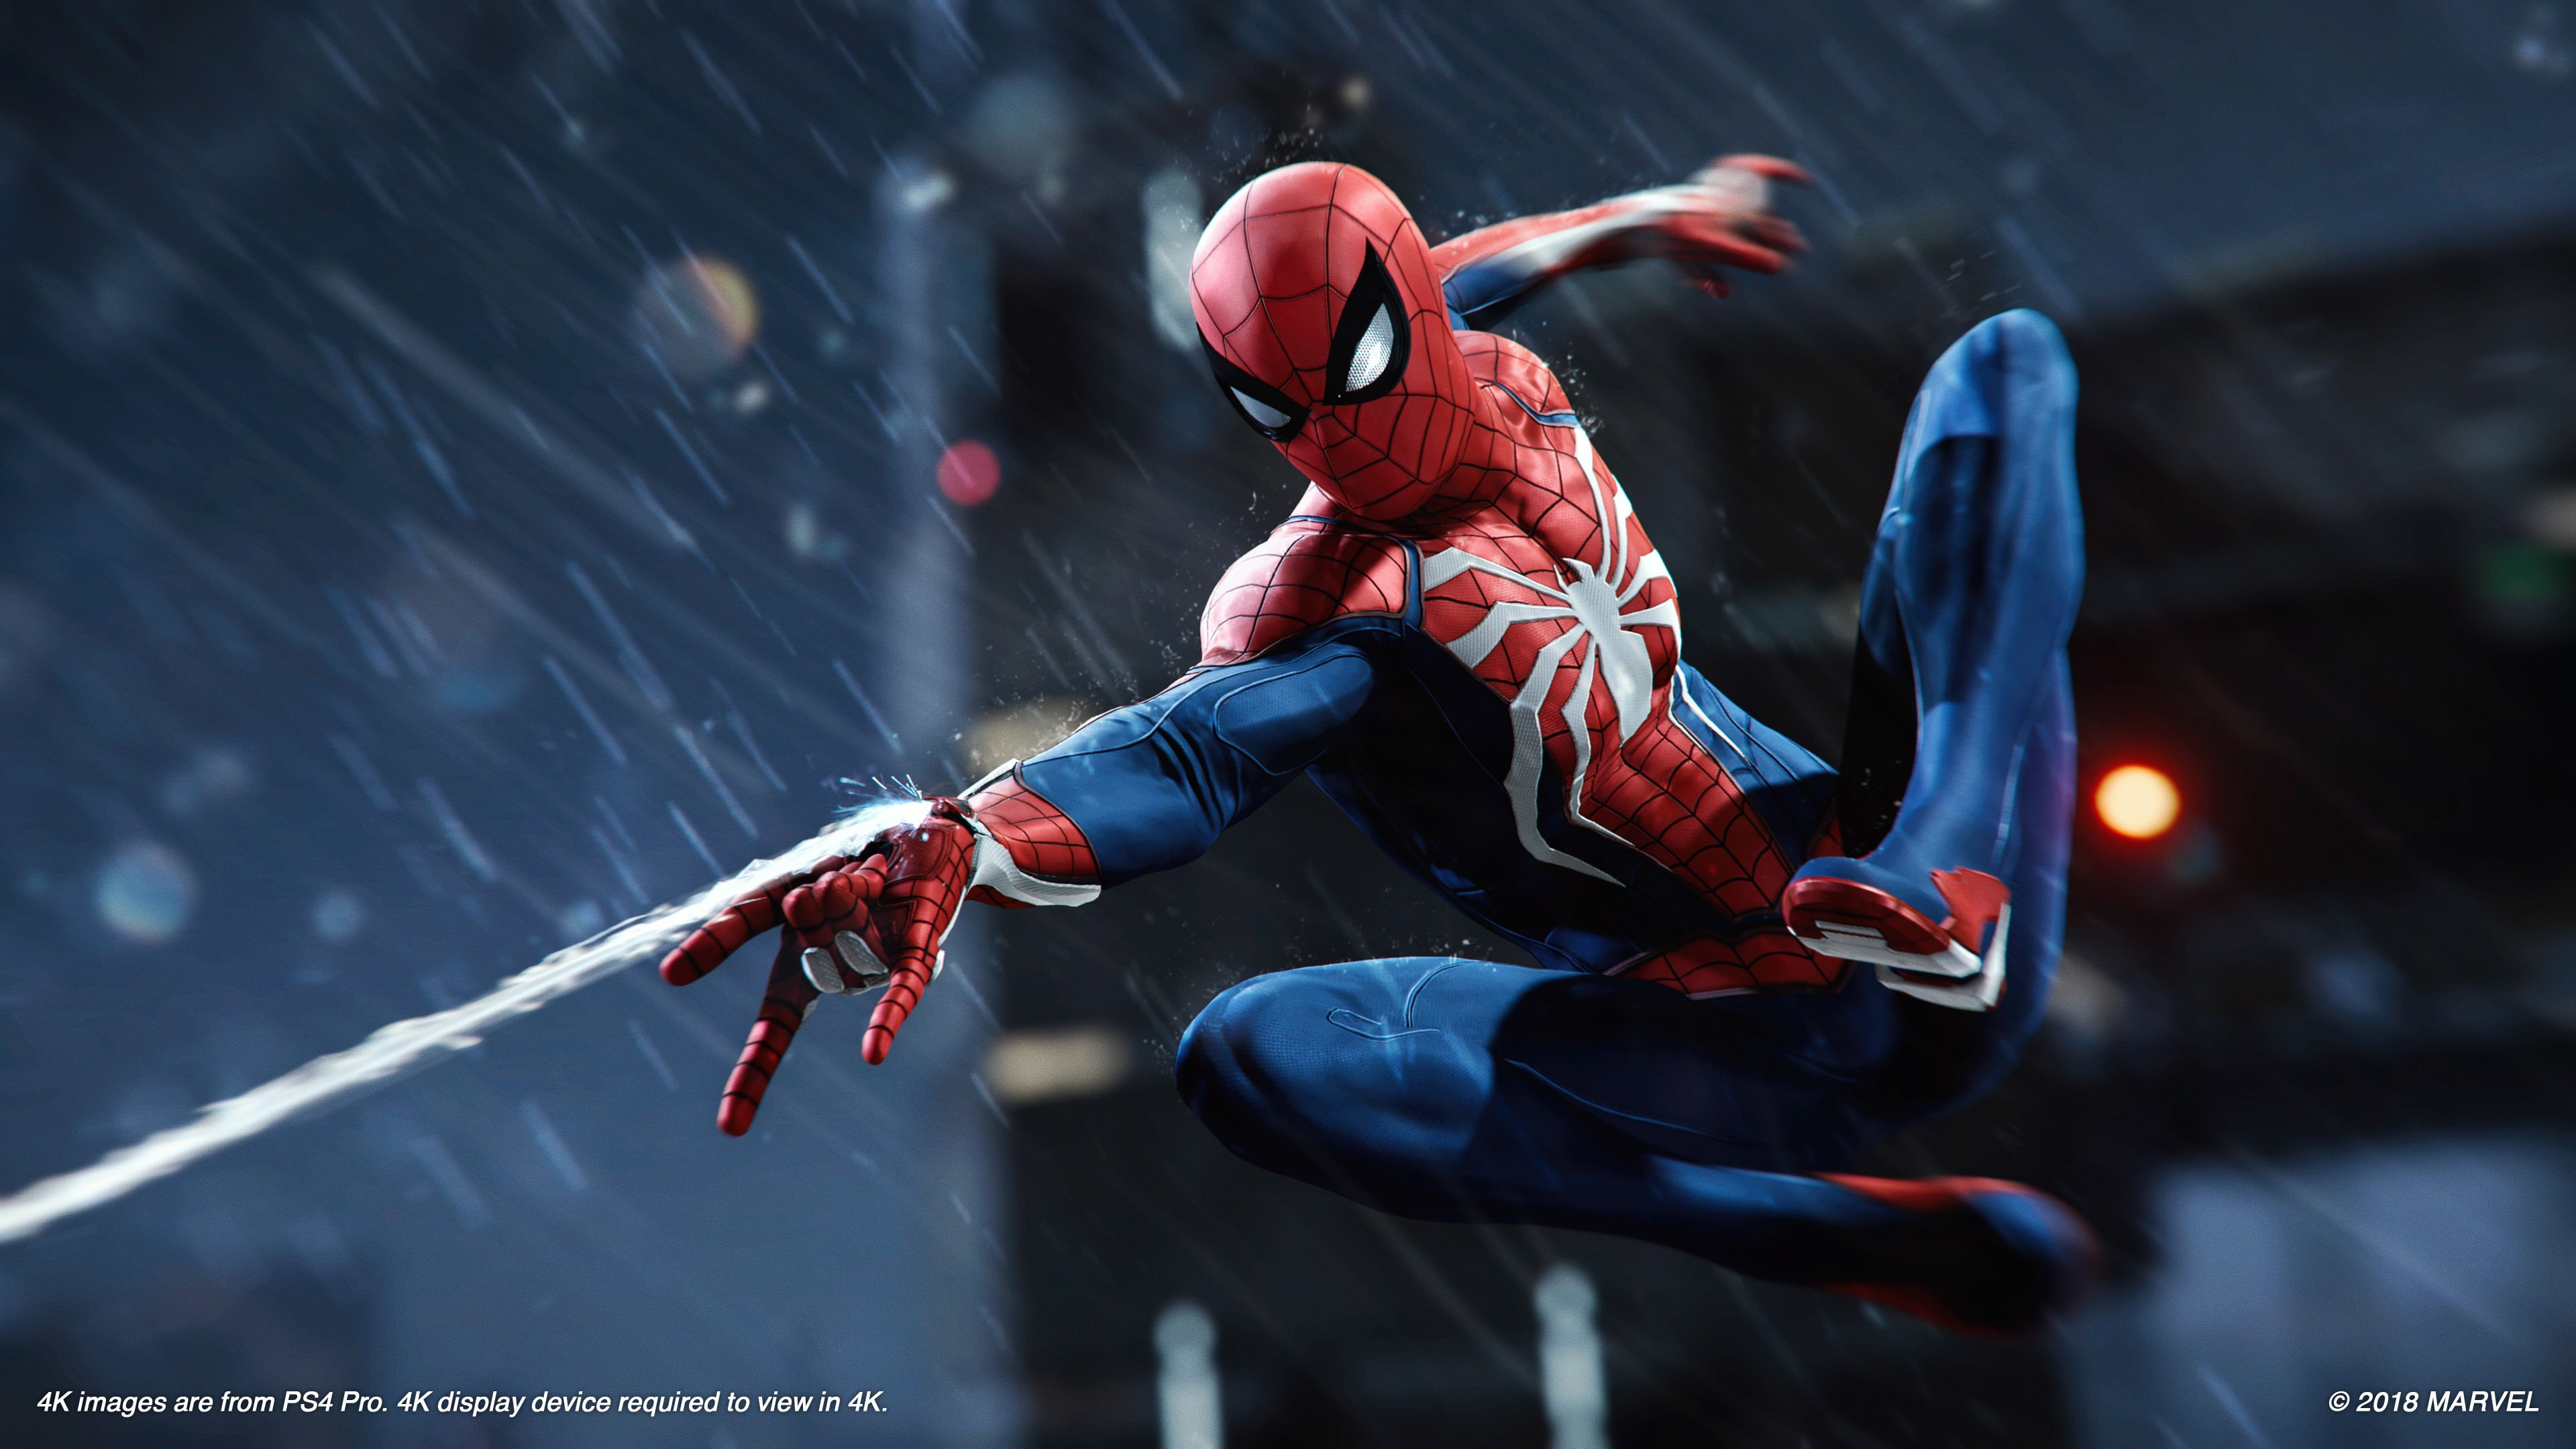 Spiderman 4k Wallpapers For Your Desktop Or Mobile Screen